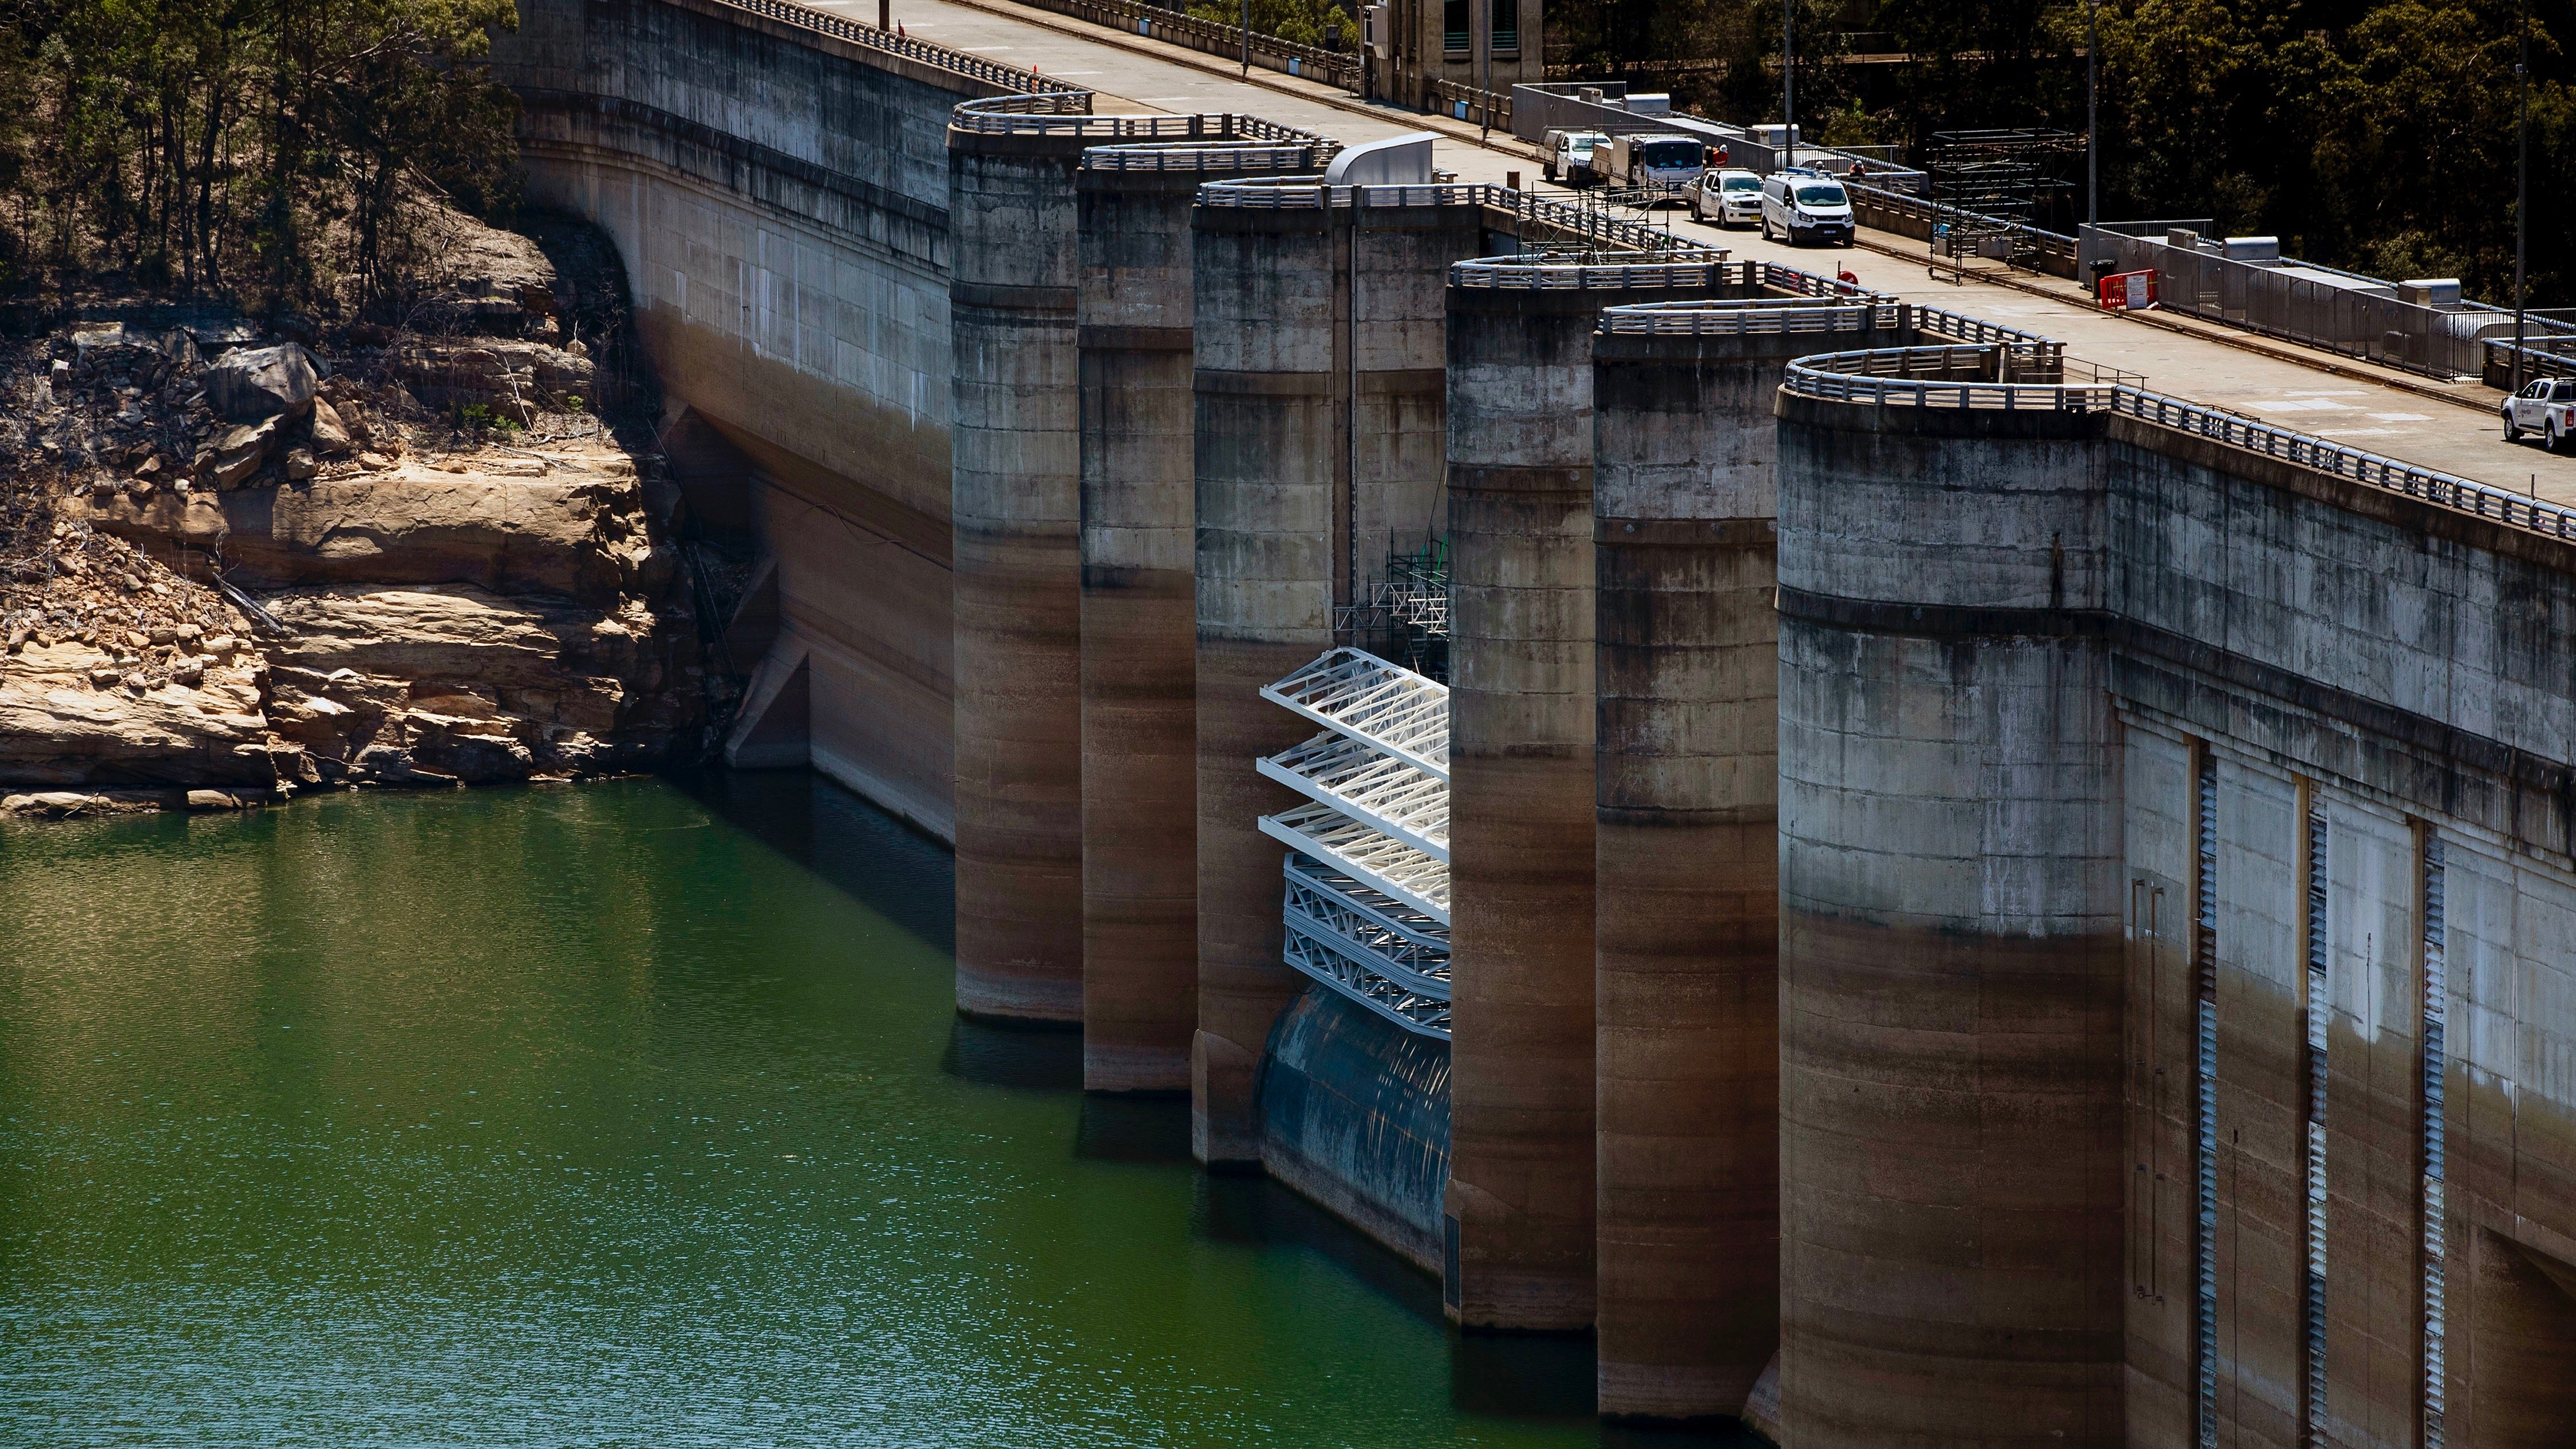 Sydney Water Crisis Warnings Ignored by Officials 6 Months Ago Docs Reveal